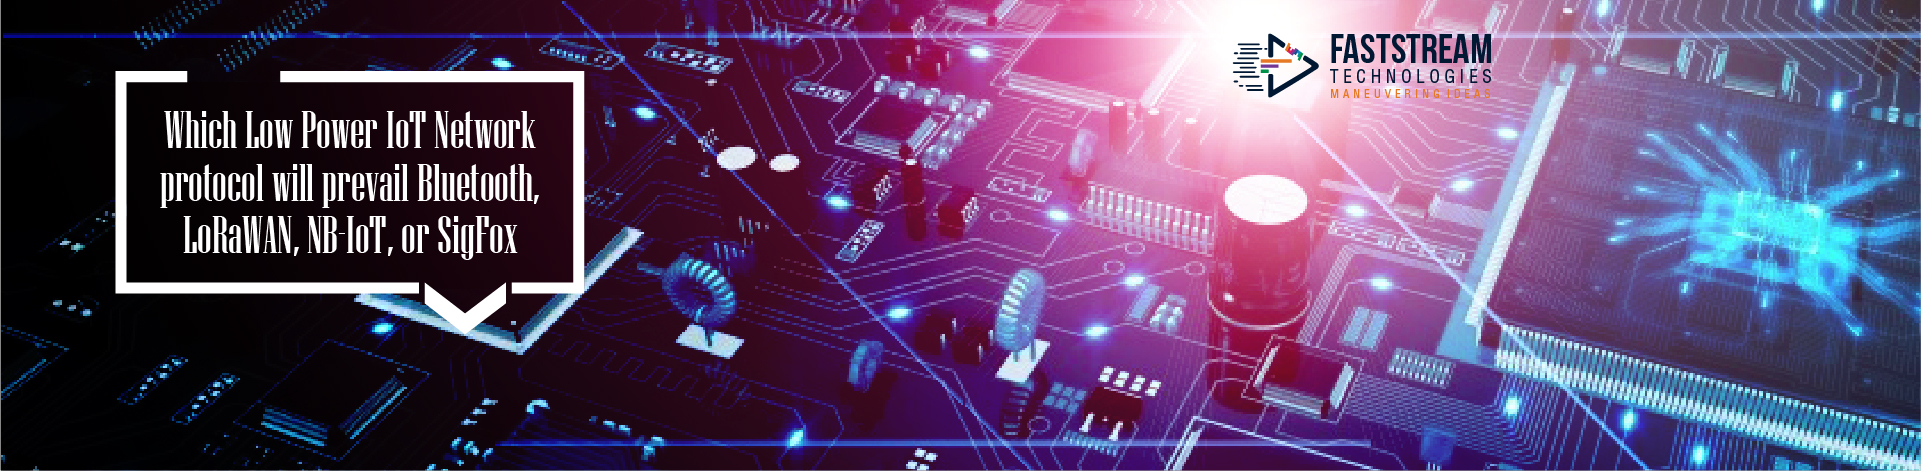 Which Low Power IoT Network protocol will prevail Bluetooth, LoRaWAN, NB-IoT, or SigFox